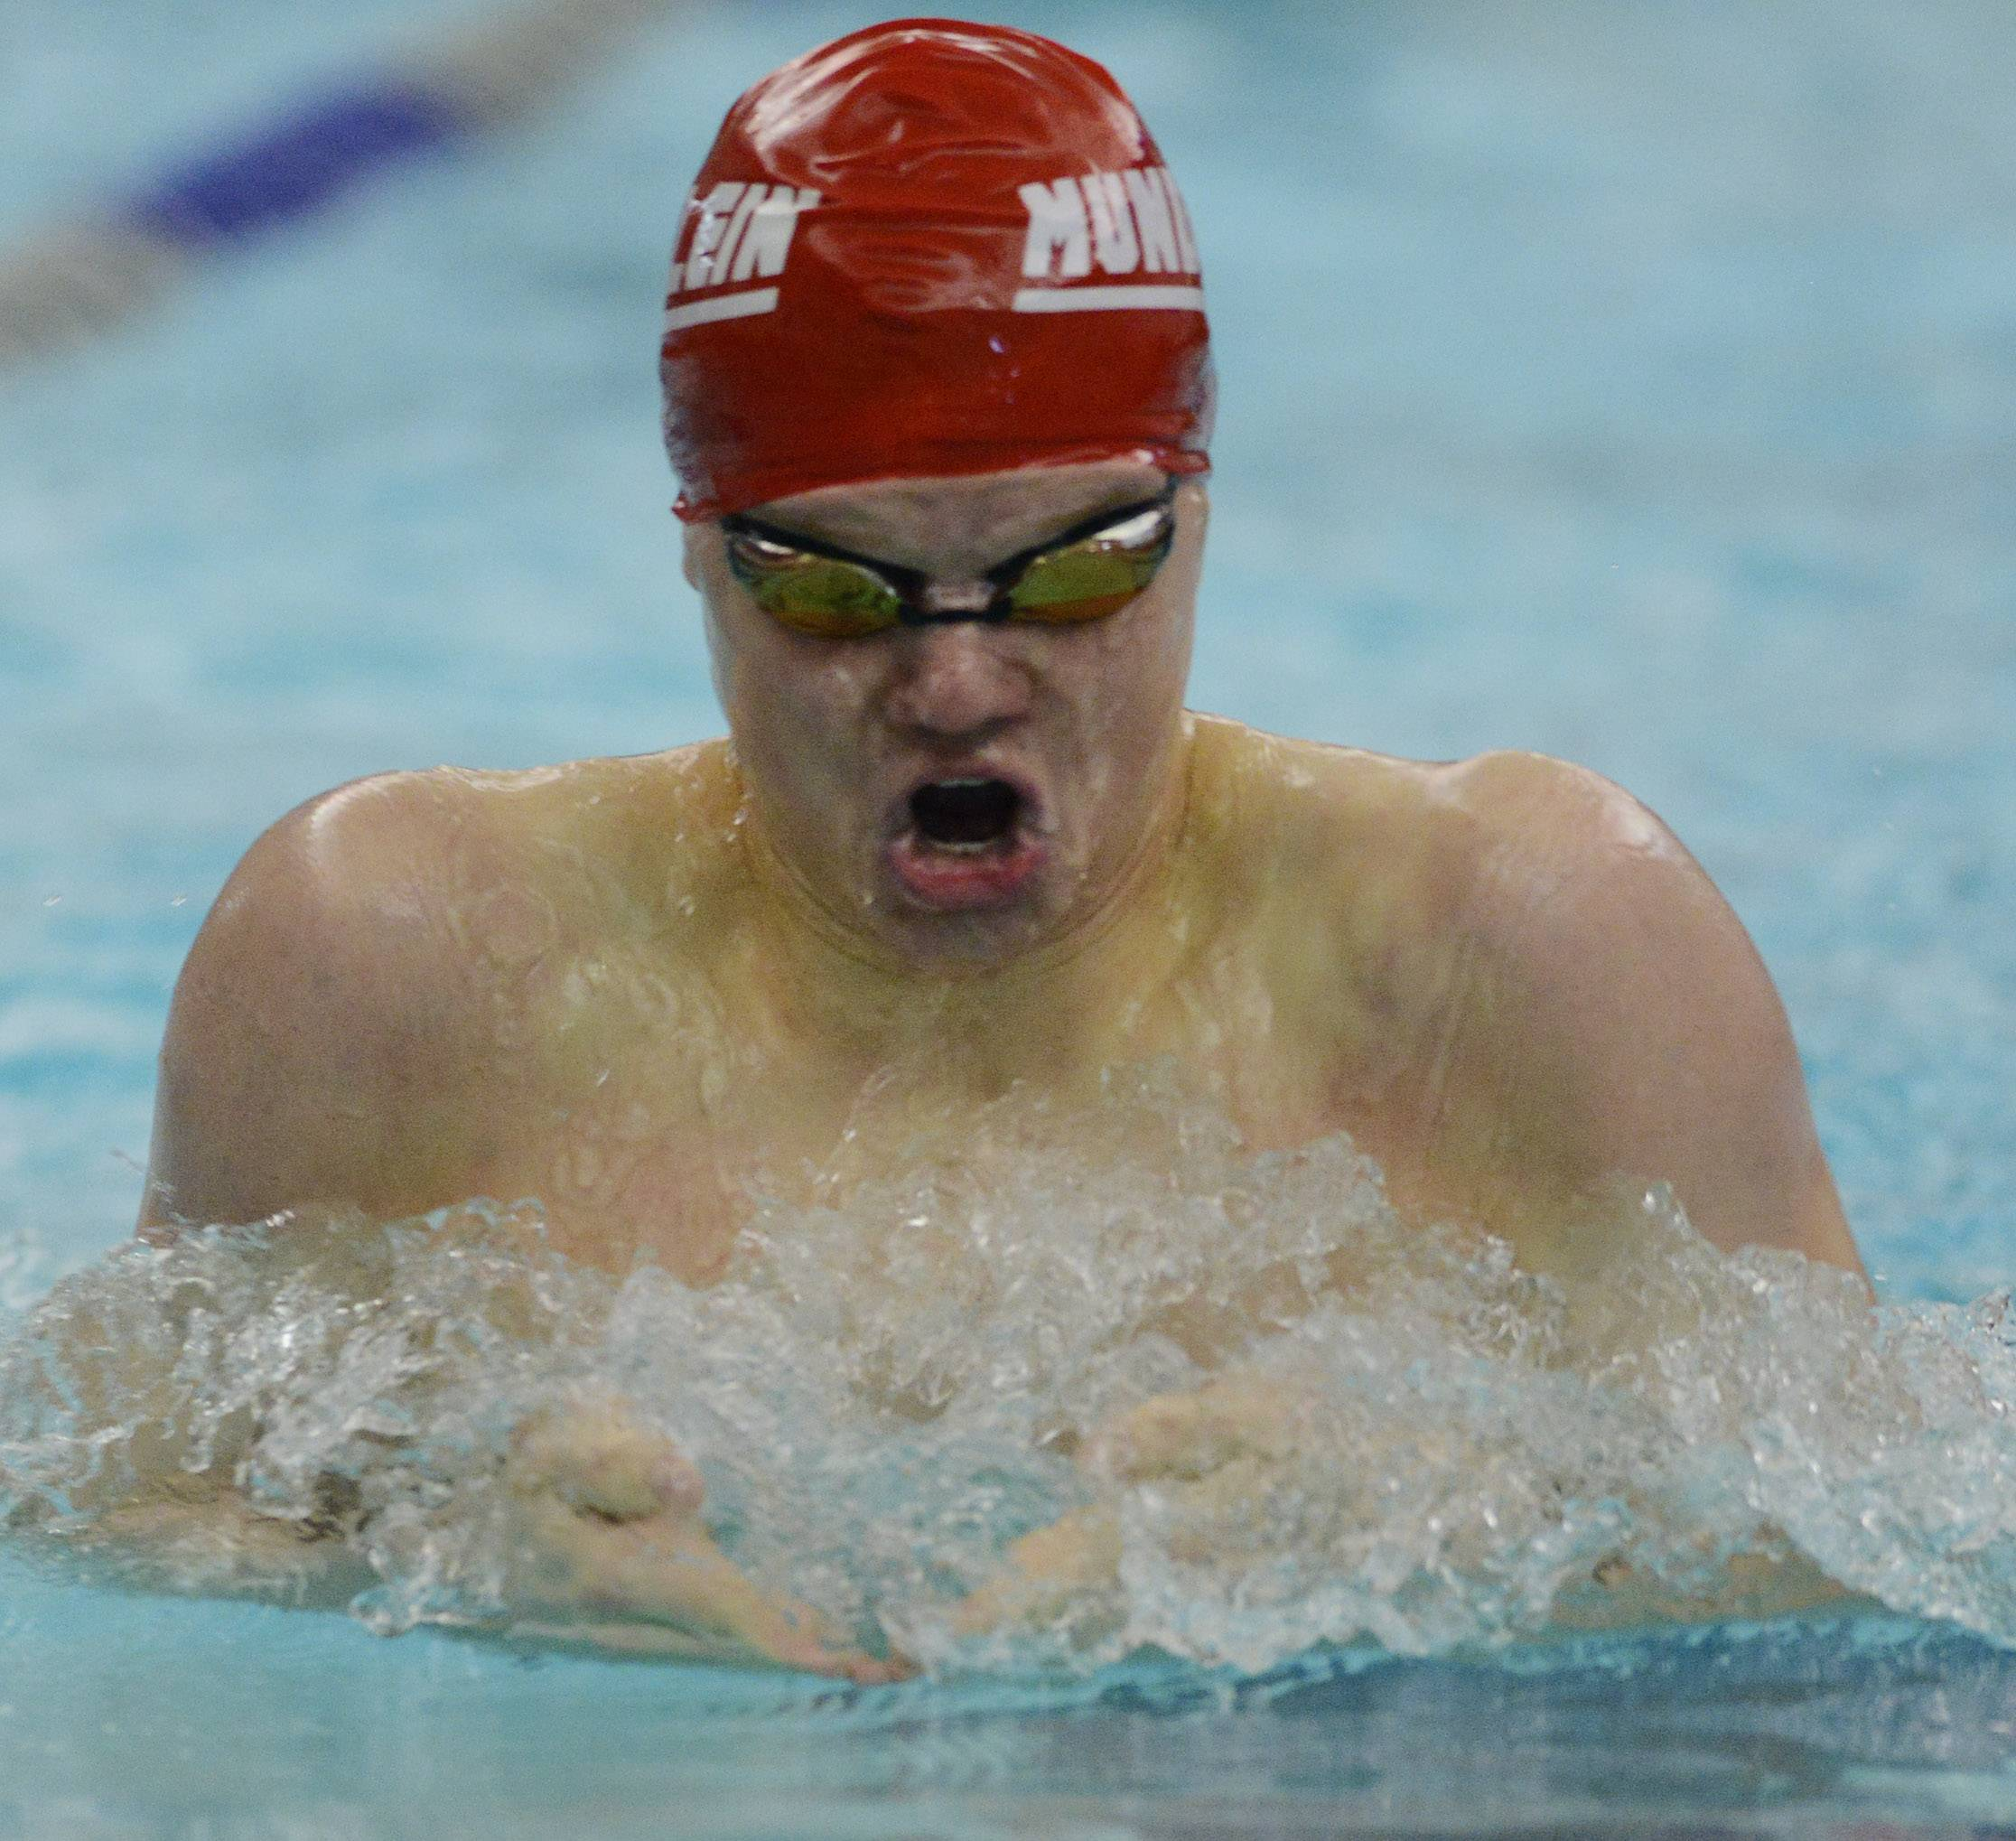 Mundelein's Ayrton Kasemets swims breaststroke in the 200-yard individual medley during the North Suburban Conference boys swimming meet at Vernon Hills on Saturday.